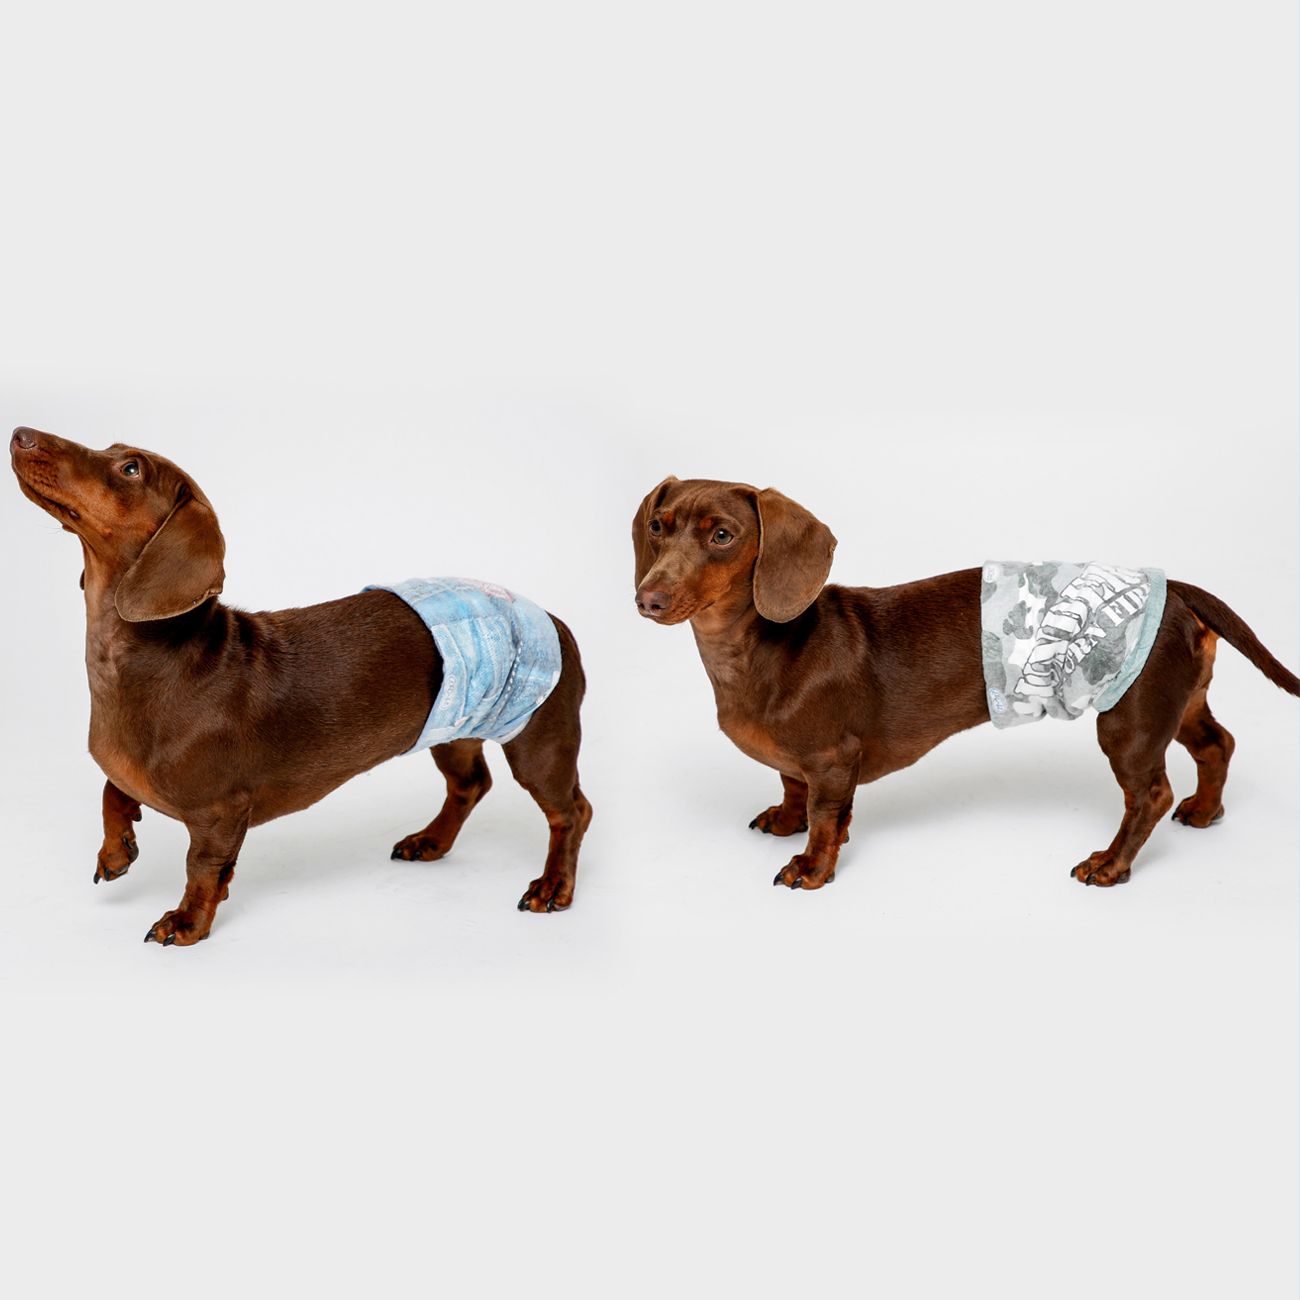 disposable male wraps for dogs are available in multiple sizes